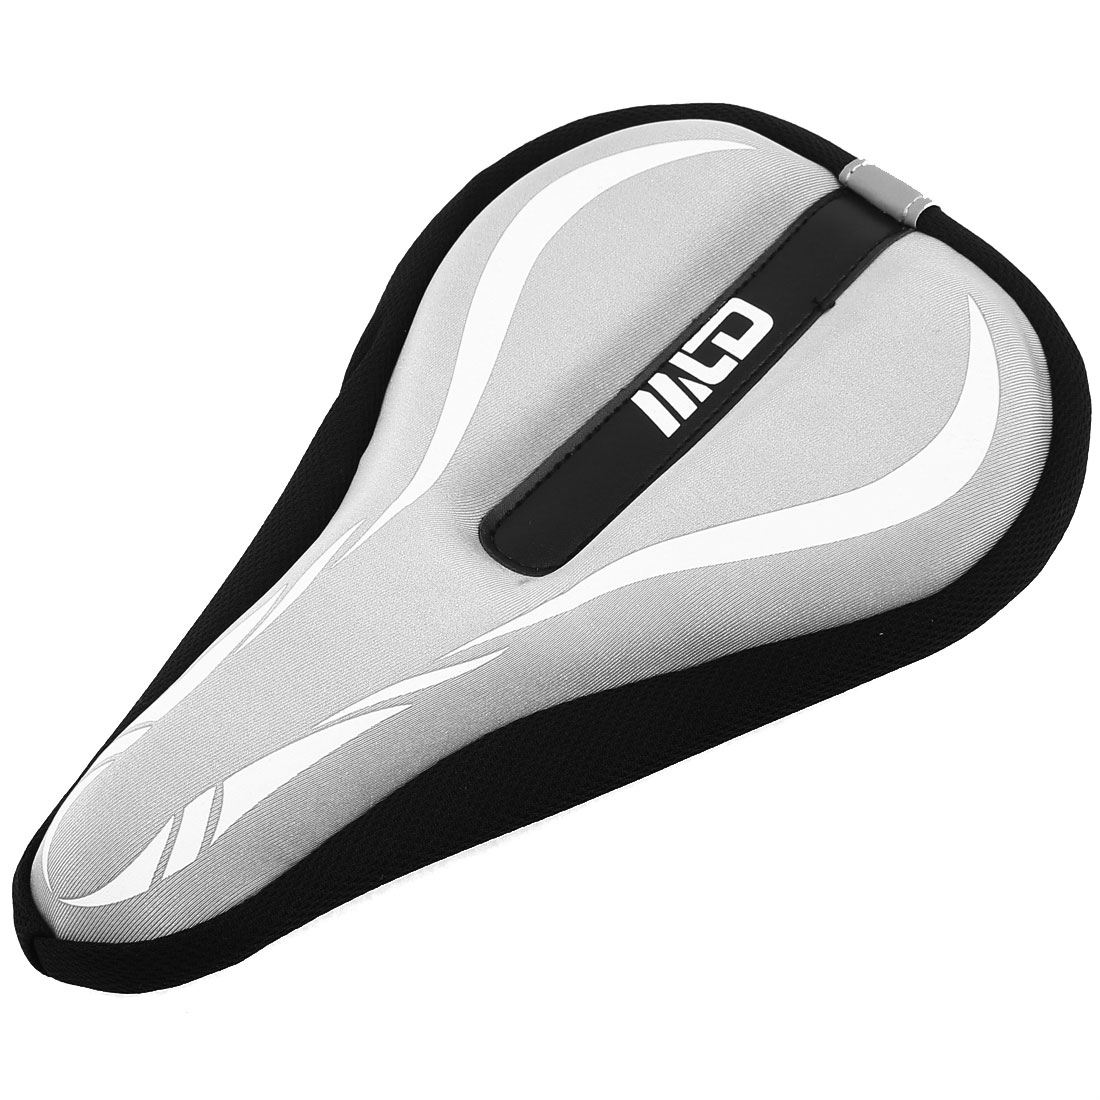 Replacing Part Mountain Bike Soft Foam Seat Saddle Cover Gray 30cm Long